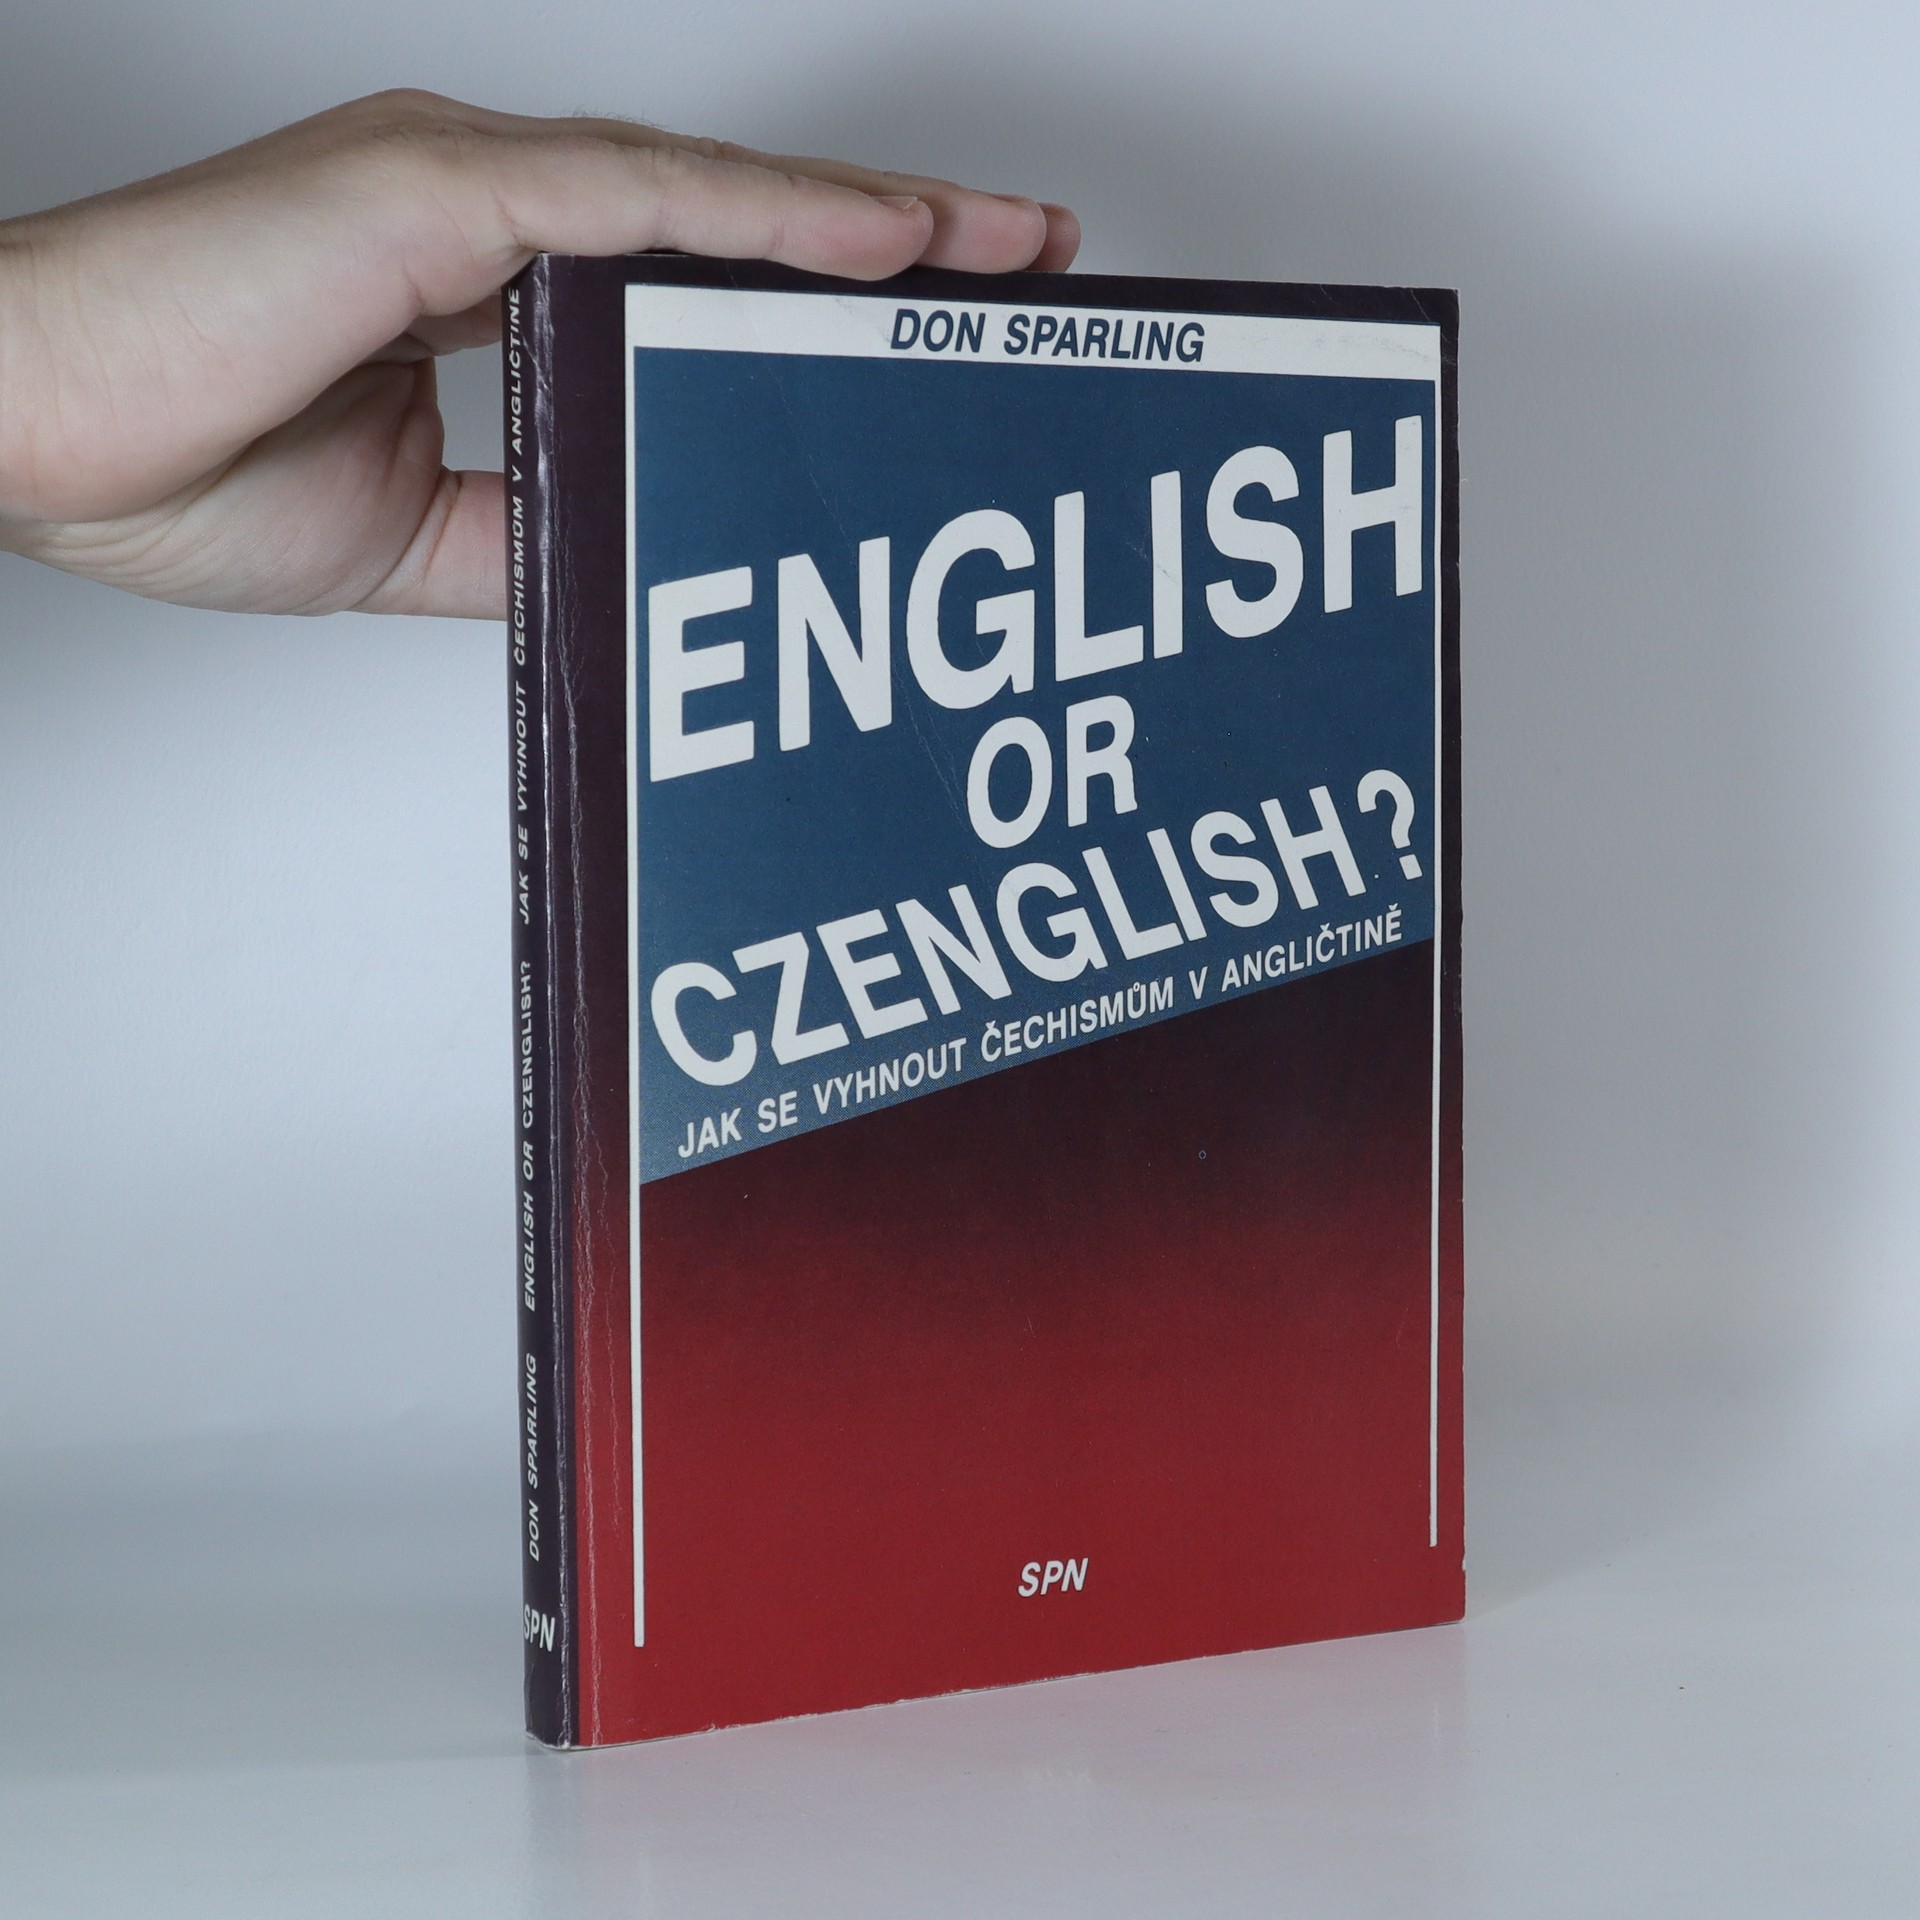 antikvární kniha English or Czenglish?, 1990